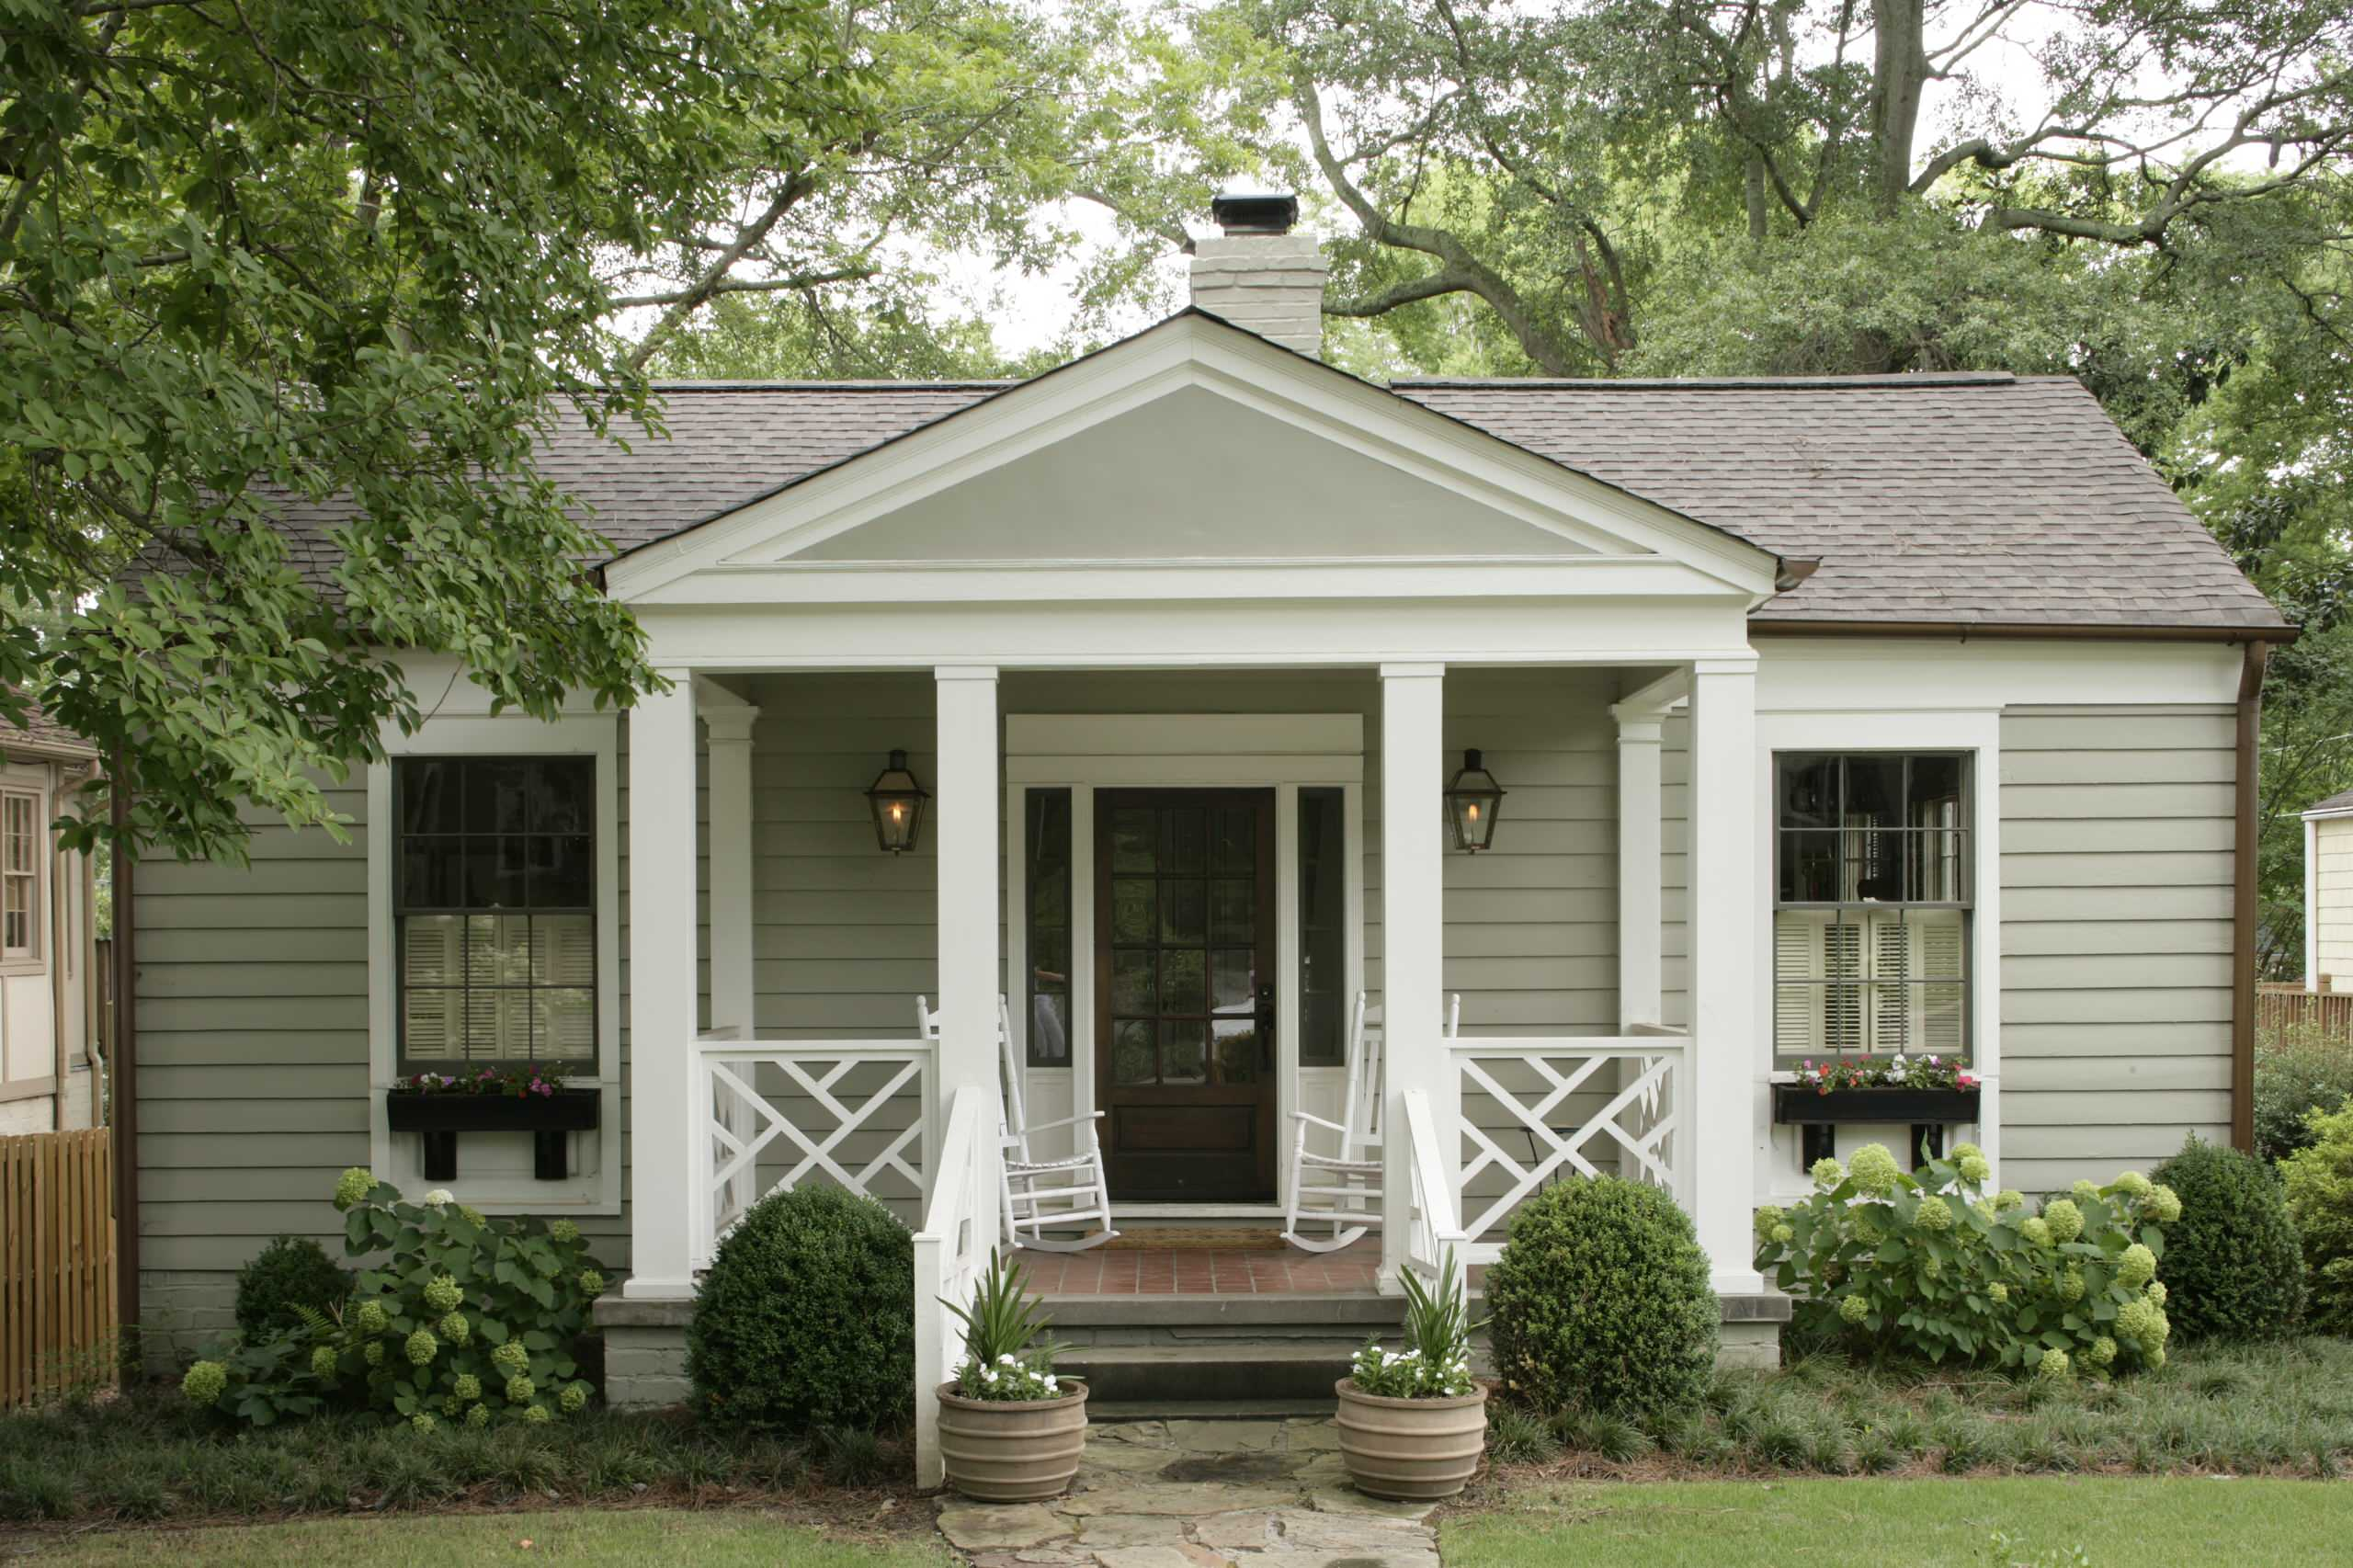 Front Porch Ideas for Ranch Style Homes Traditional Exterior Container Plants Cottage Entrance Fretwork